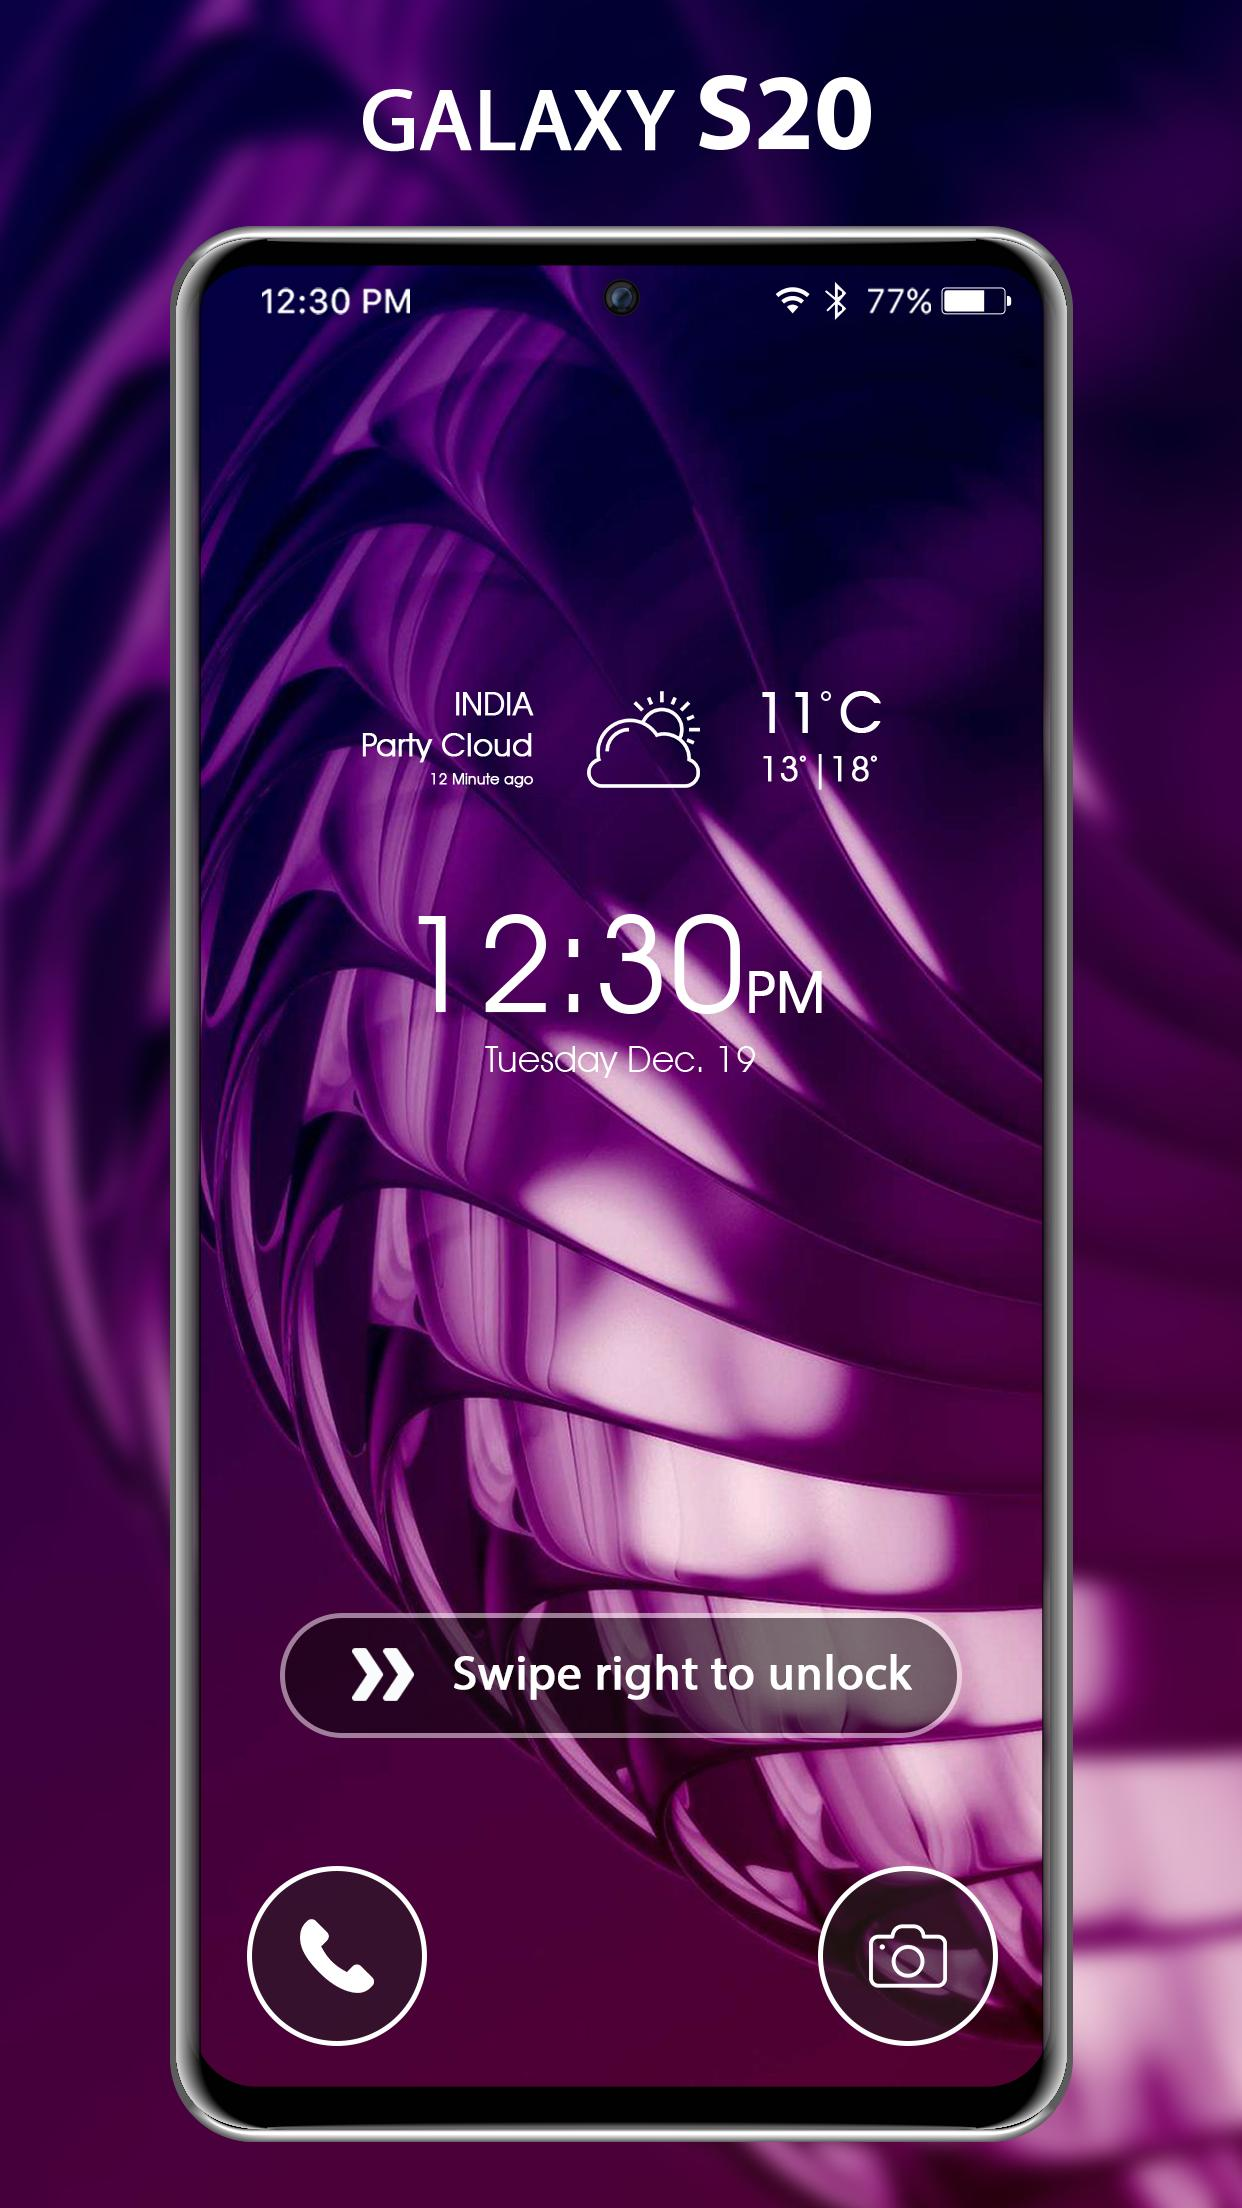 Wallpaper For Galaxy S20 Ringtone For Galaxy S20 For Android Apk Download